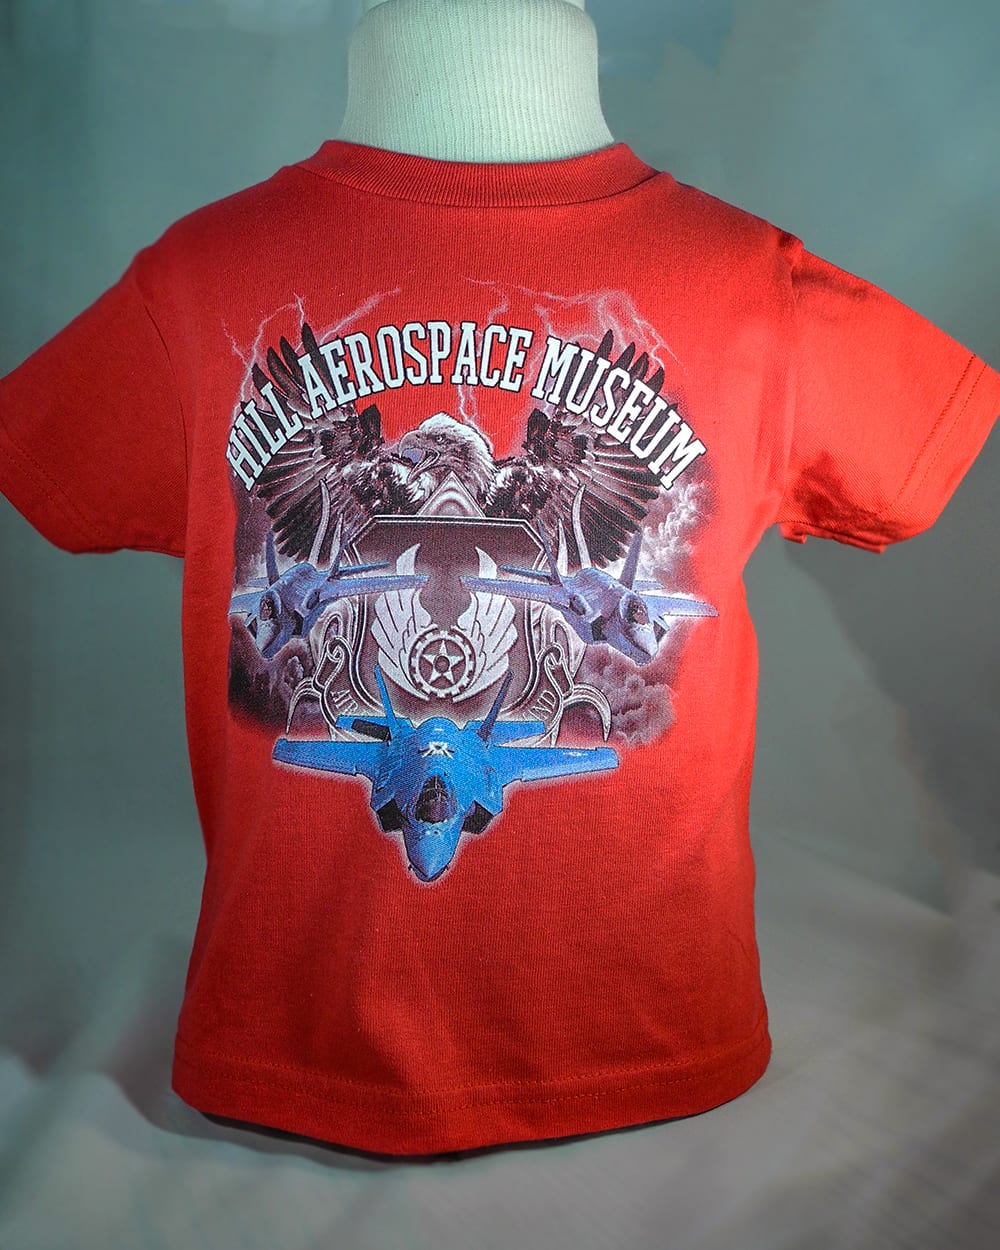 Hill Aerospace Museum Toddler T's 1